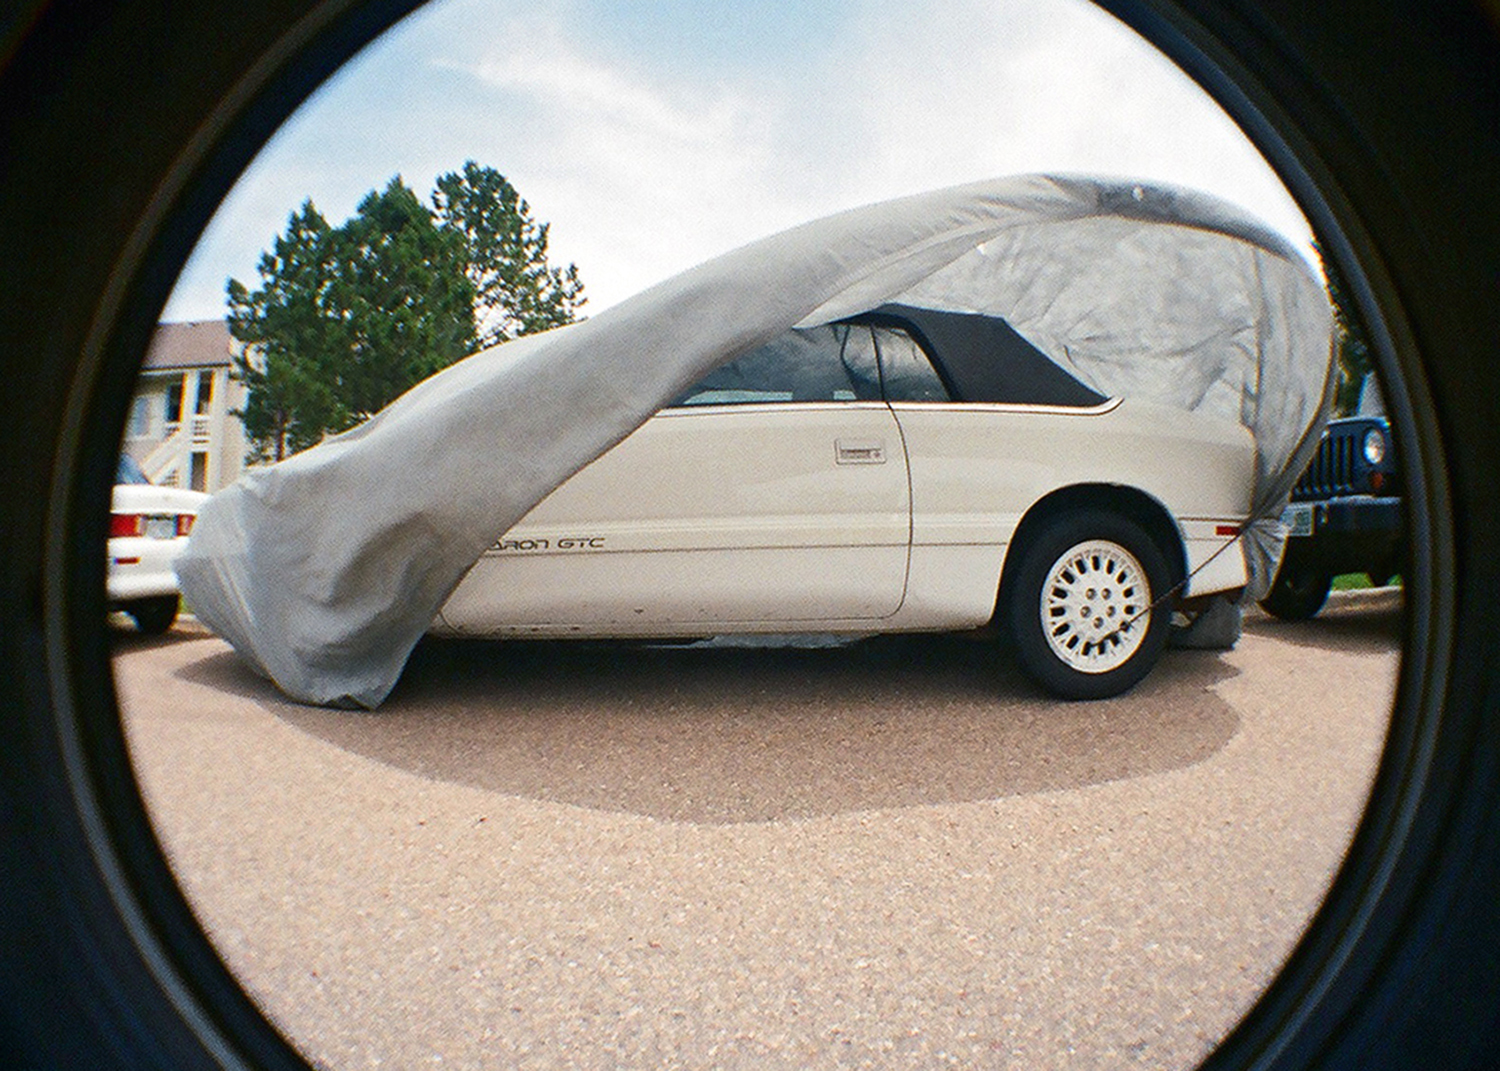 LeBaron GTC Drop-head Coupe by Chrysler  On a windy day in Gunbarrel, CO